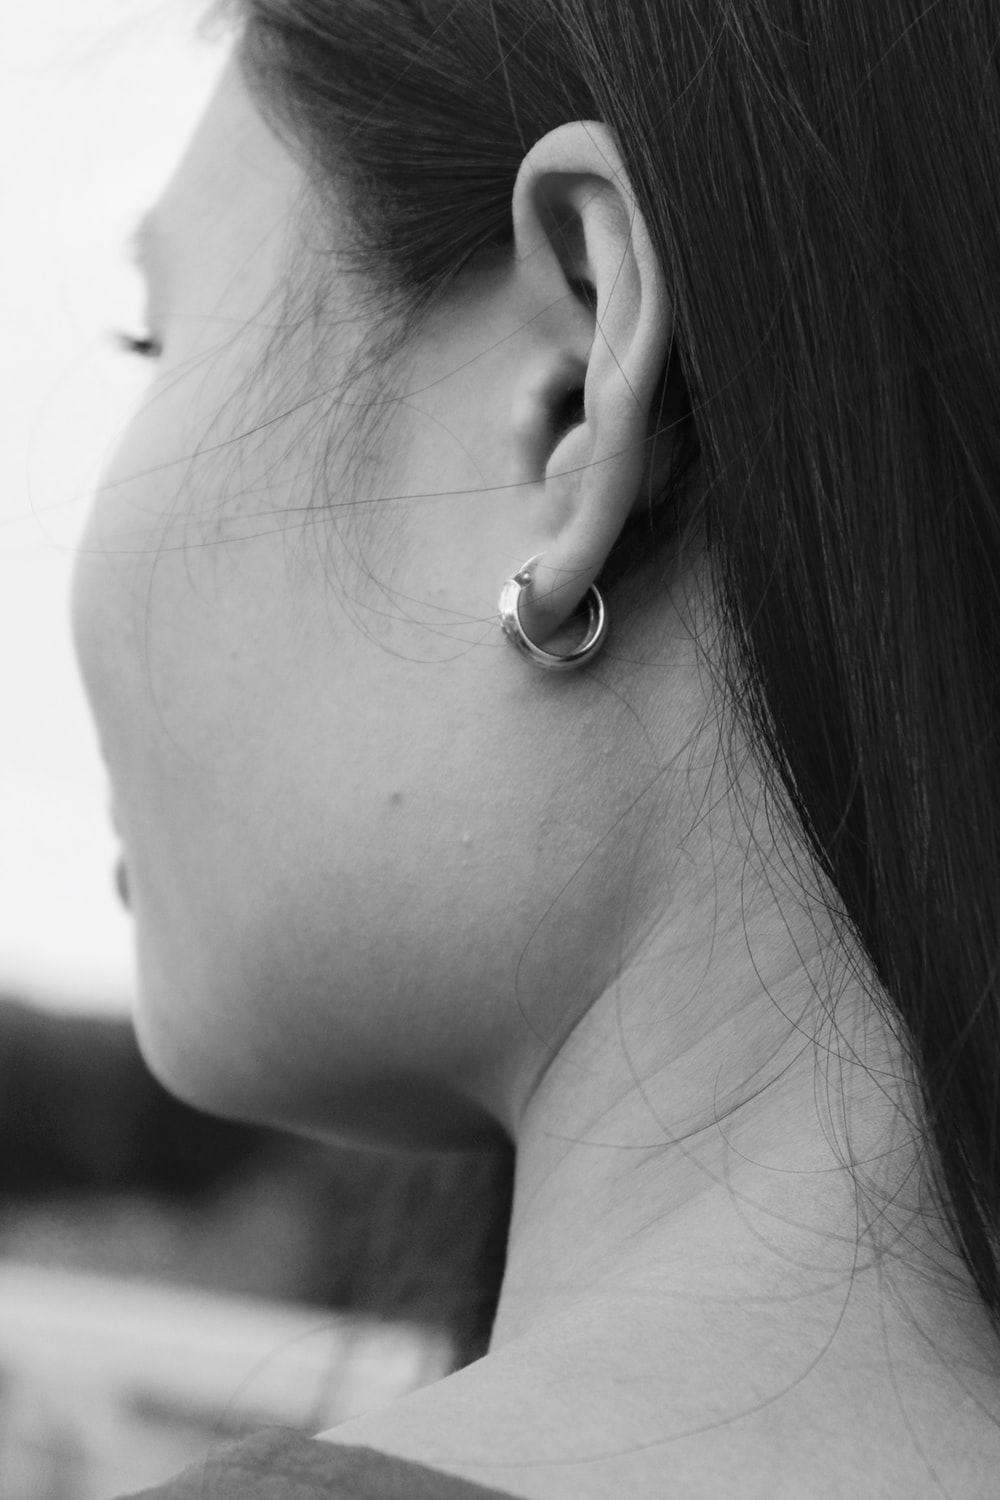 grayscale photography of woman wearing hoop earring